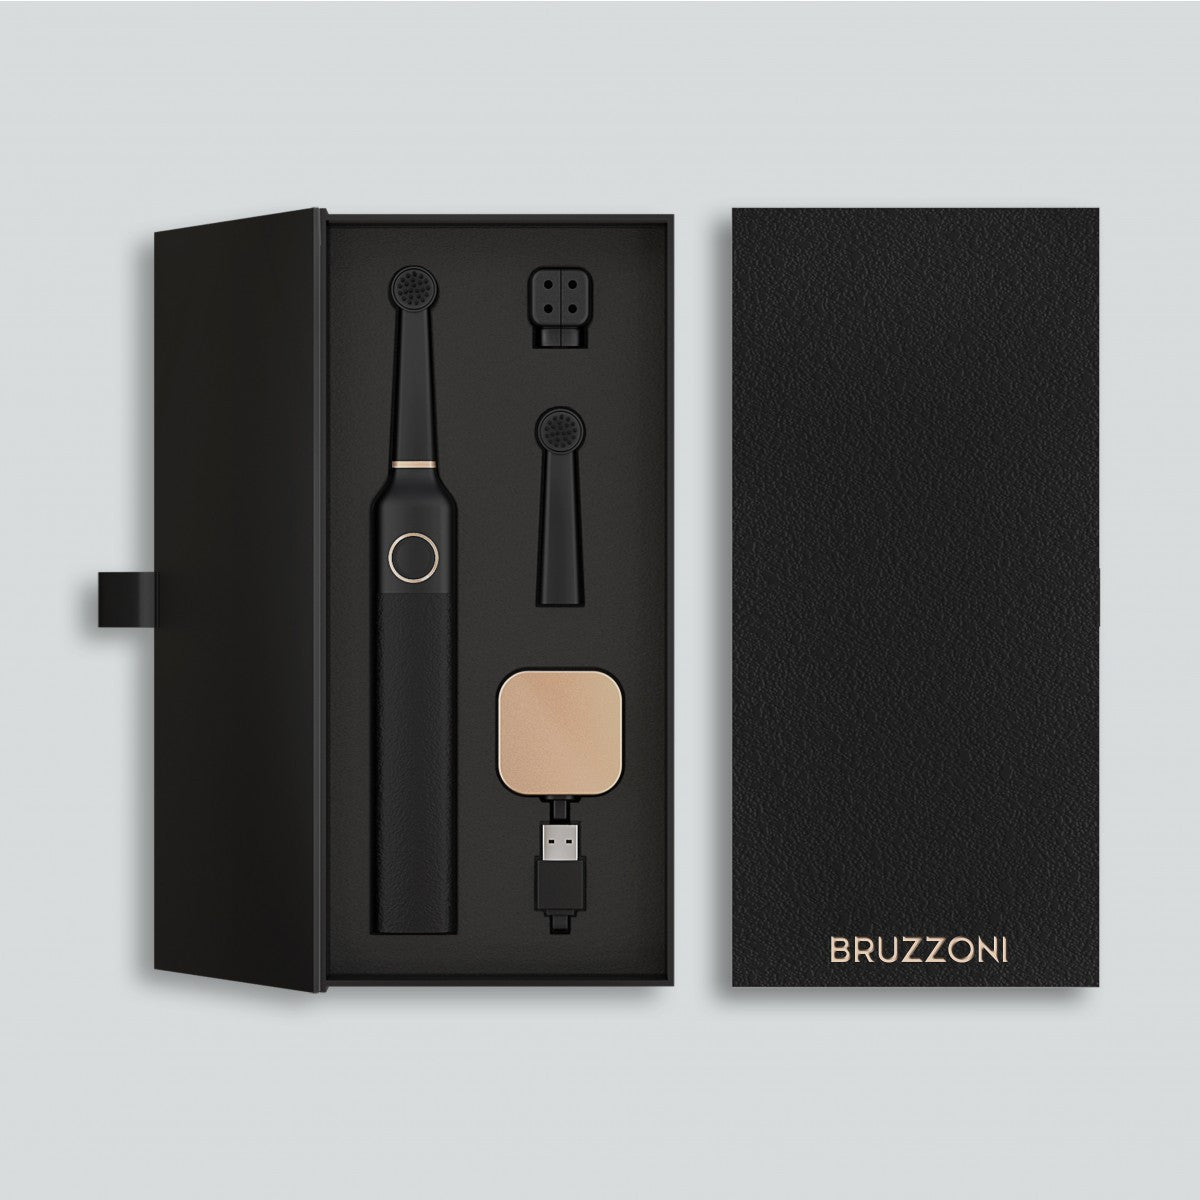 Bruzzoni Electric Toothbrush